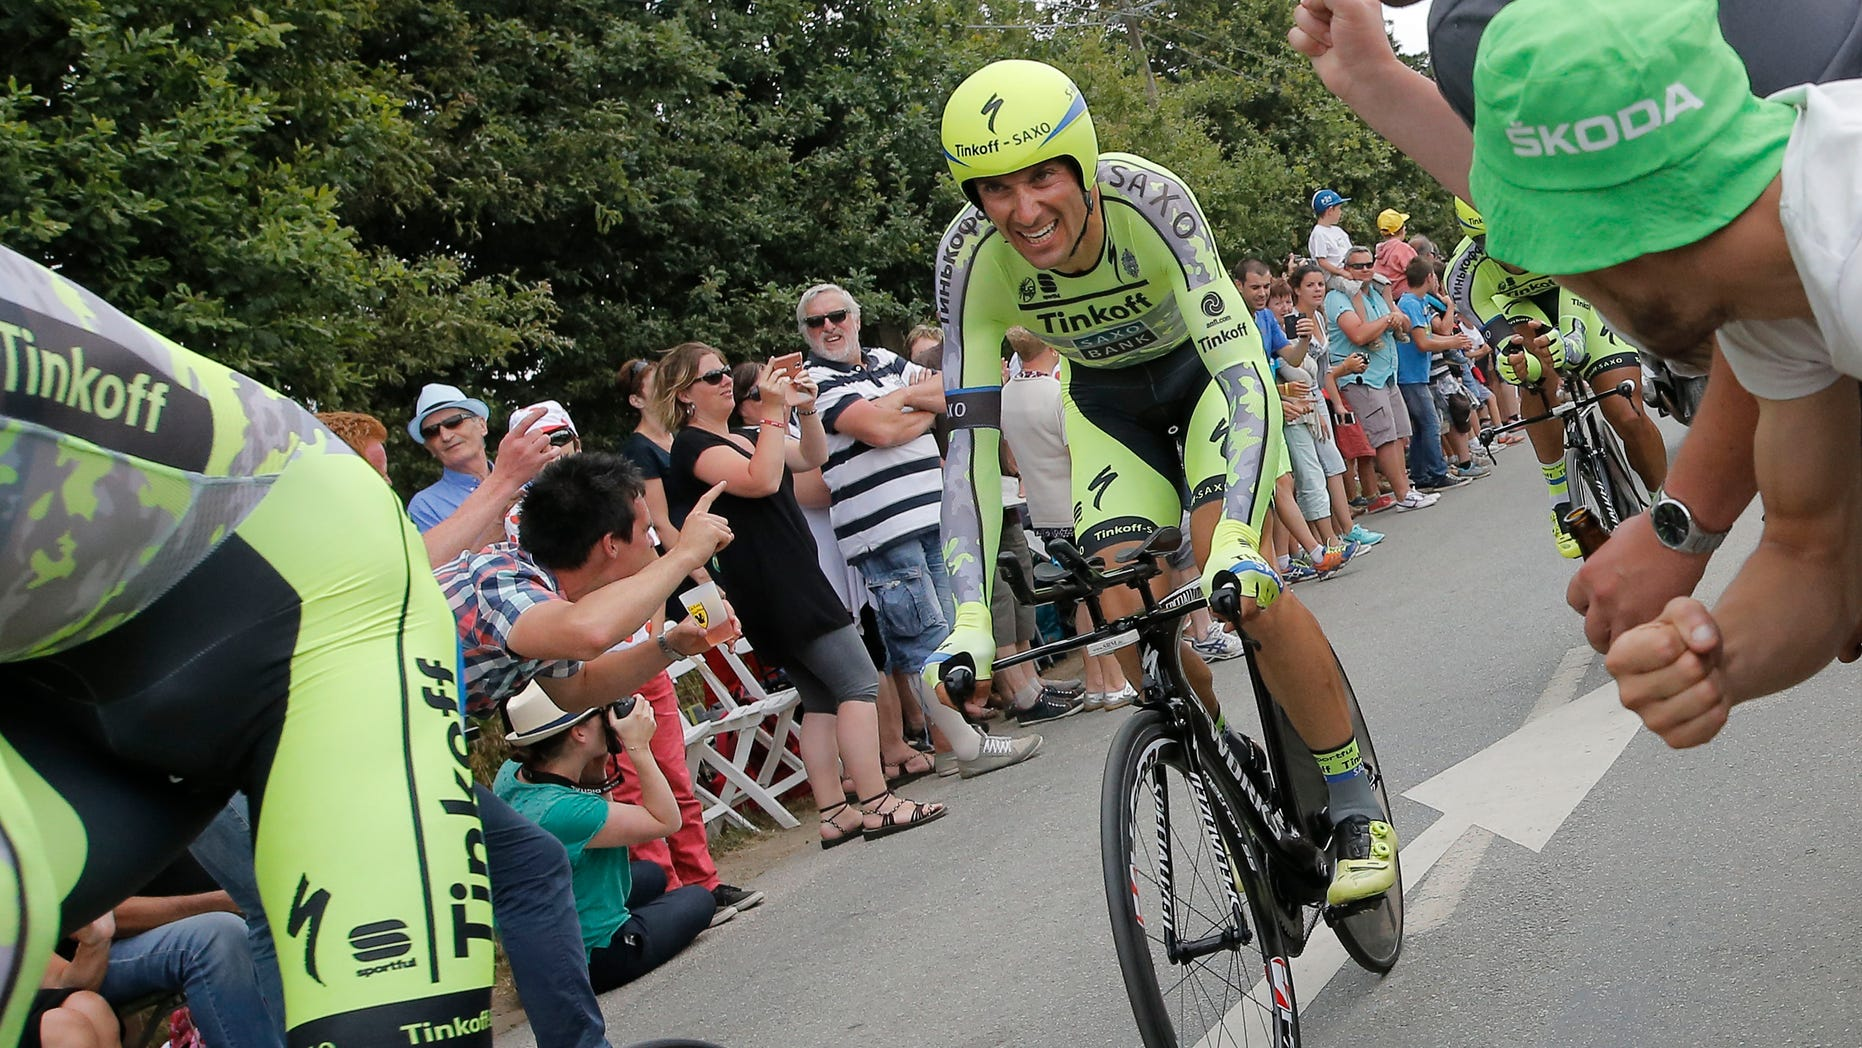 July 12, 2015 - Italy's Ivan Basso, left, trails behind his Tinkoff Saxo team with Spain's Alberto Contador, right, during the ninth stage of the Tour de France cycling race. Basso announced he has cancer in his left testicle and is dropping out of the Tour de France.